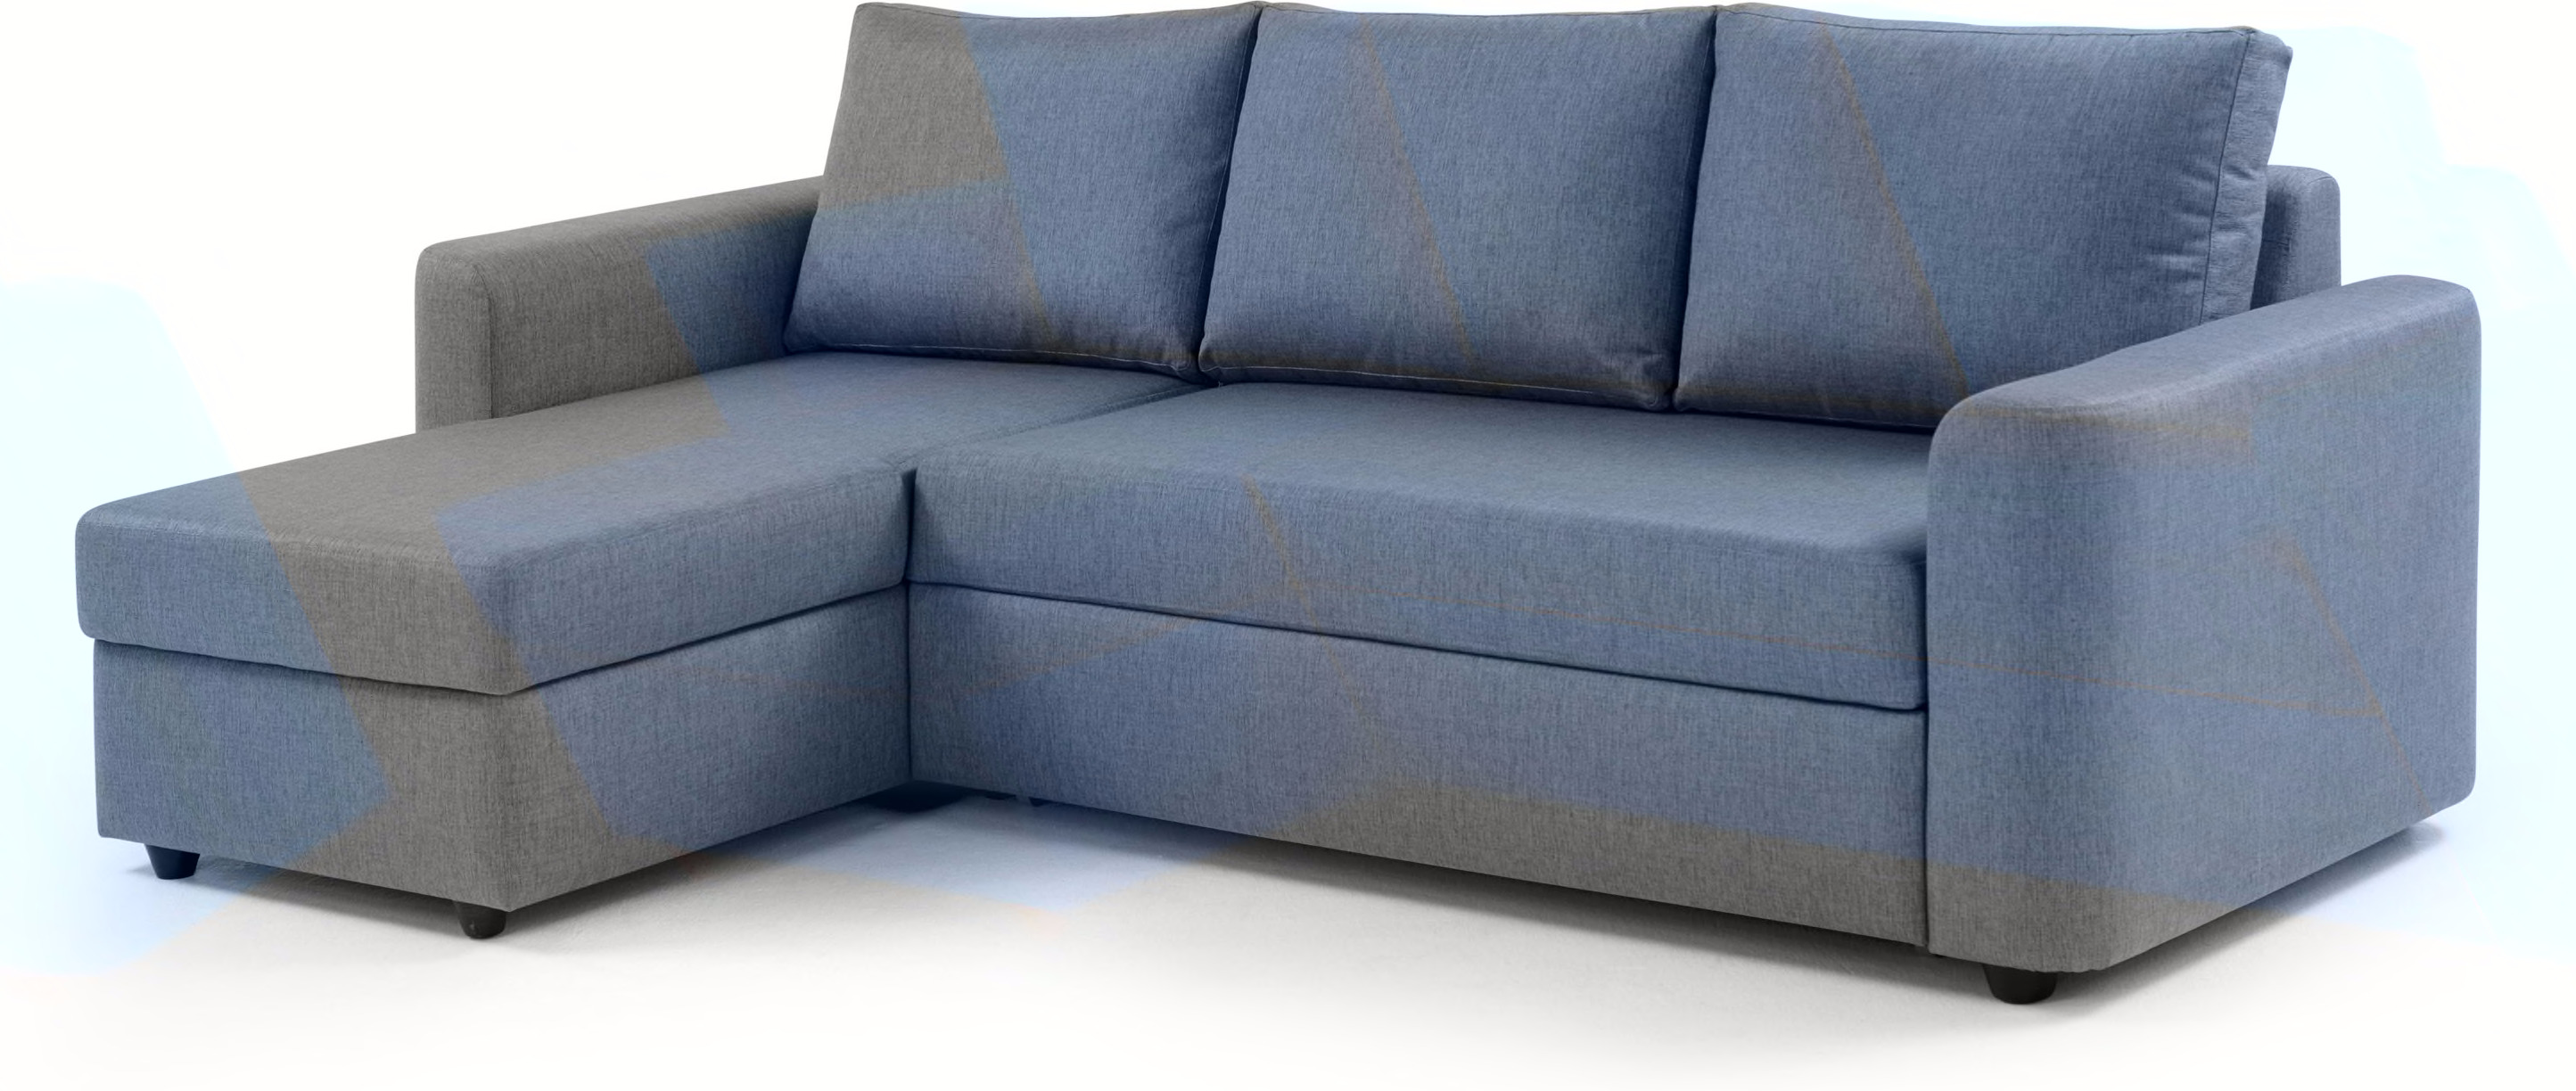 buy cheap corner sofa bed compare sofas prices for best. Black Bedroom Furniture Sets. Home Design Ideas